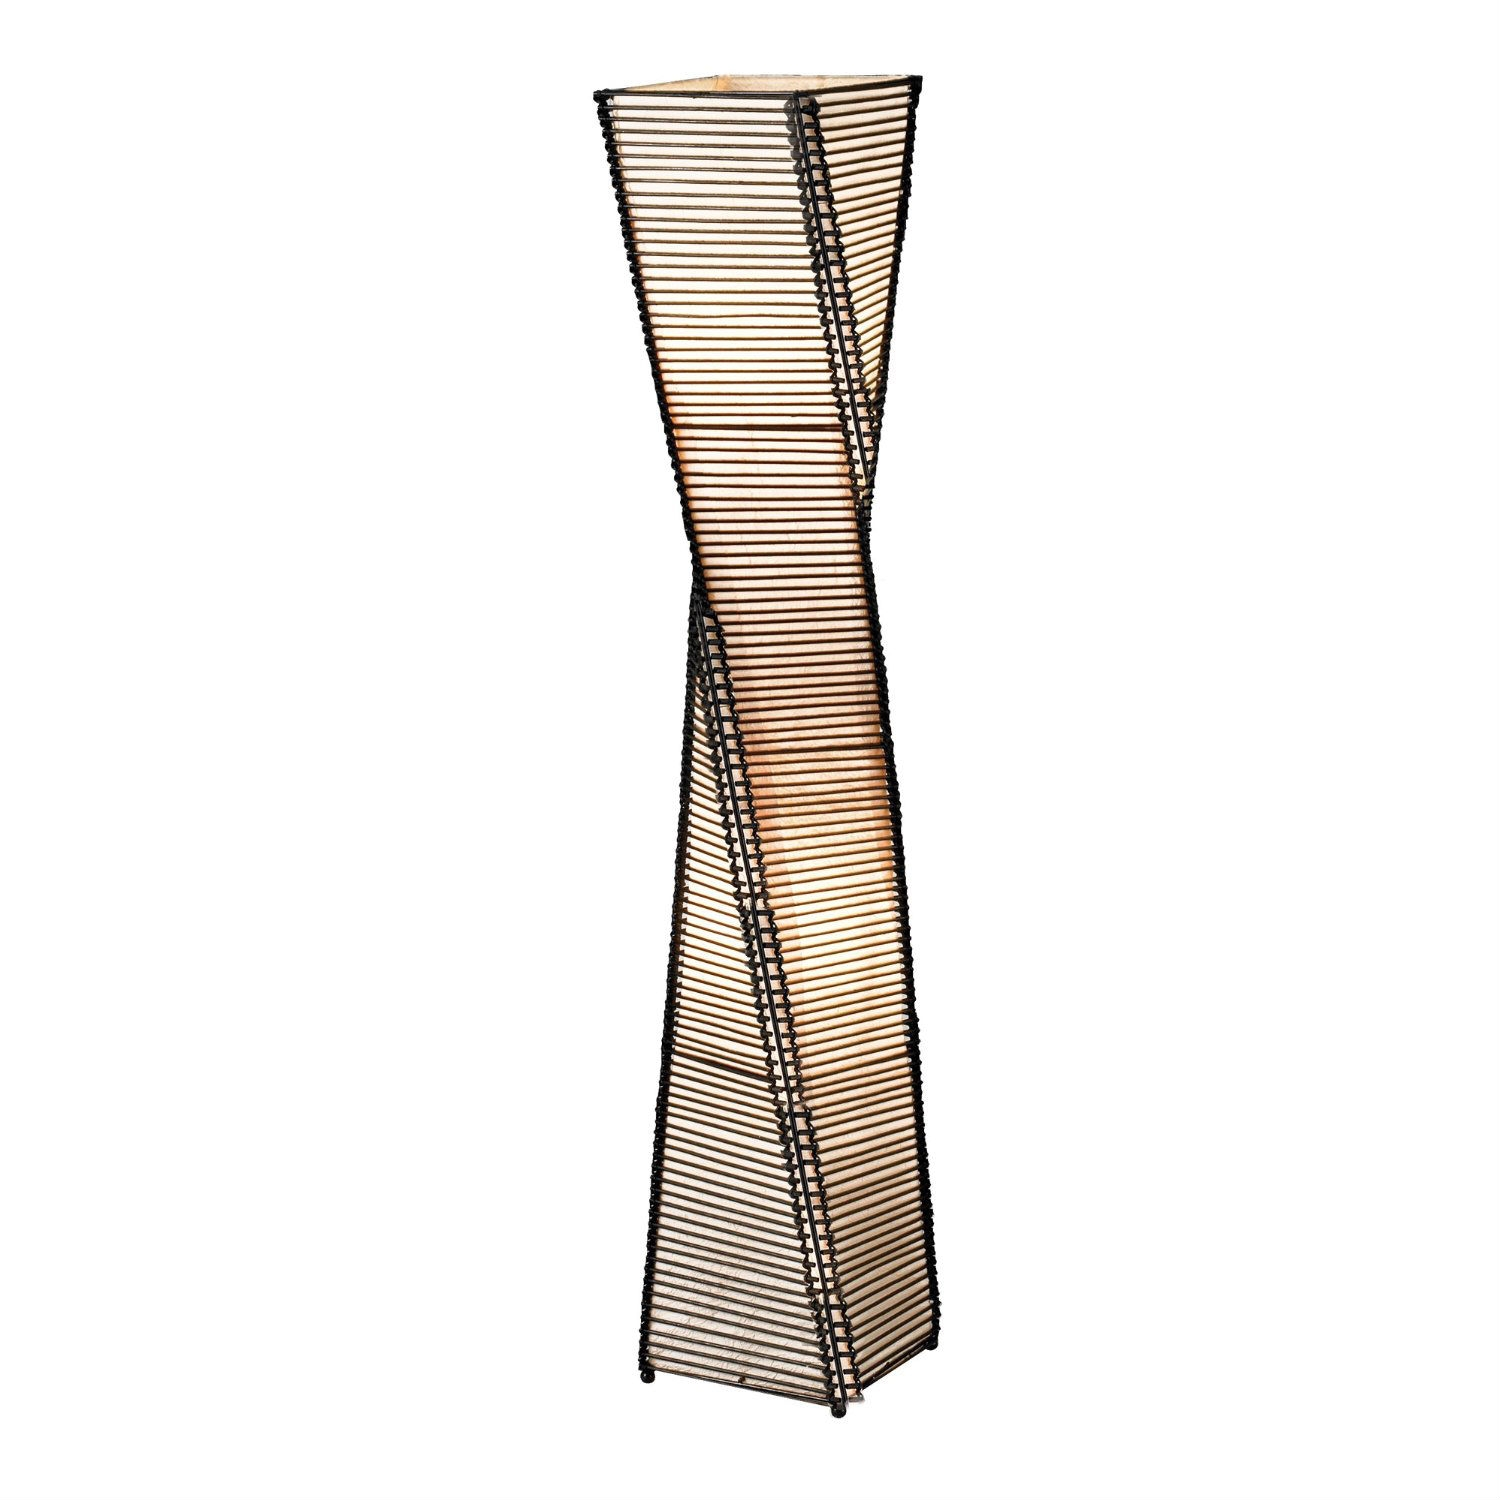 "Modern Twist Sculpture Style Floor Lamp Lantern with Beige Shade, ATBMF1064 :  The frame of each Modern Twist Sculpture Style Floor Lamp Lantern with Beige Shade is a twisting black metal tower. On either side of each corner a thin vertical cane rod is connected to the frame top and bottom. Thin black cane sticks are stacked and woven on each end to those vertical rods, resulting in the appearance of a stick tower. The share are lined with a fabric-like beige paper. Has ball feet at corners. Foot step switch. Takes 2x60 Watt. 50"" Height, 9"" Square."